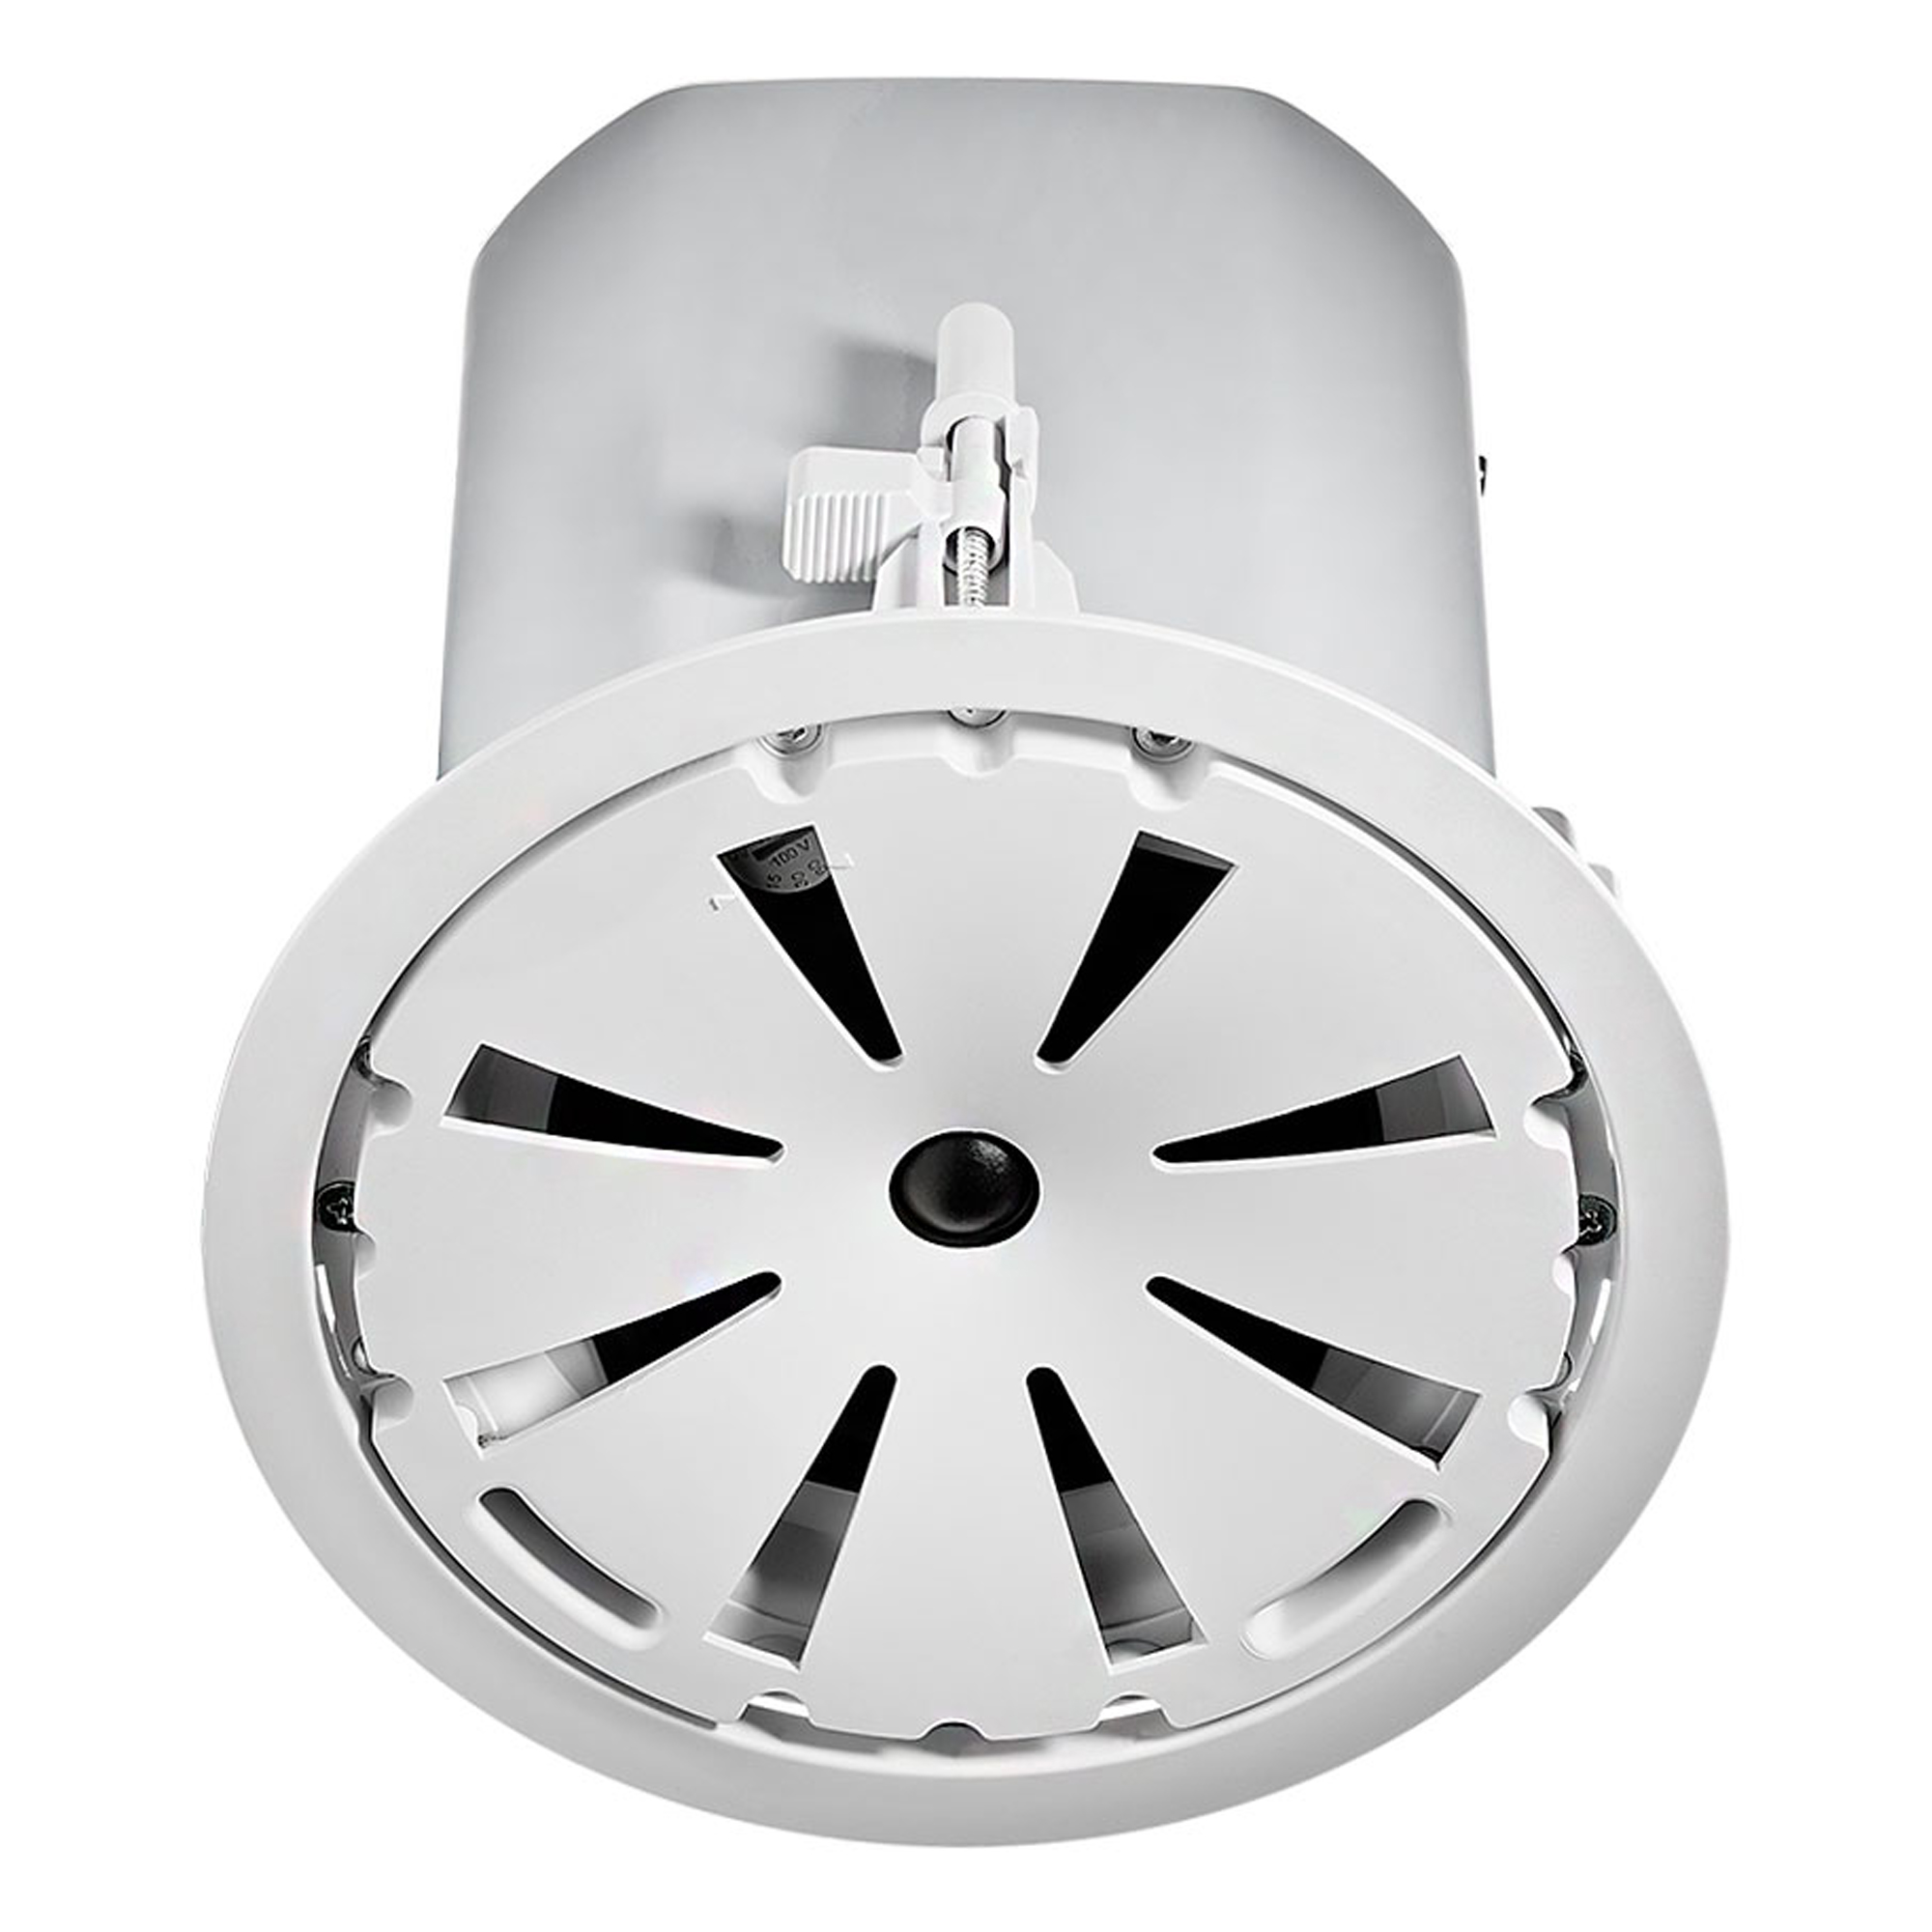 "Two-Way 5.25"" Coaxial Ceiling Loudspeaker"